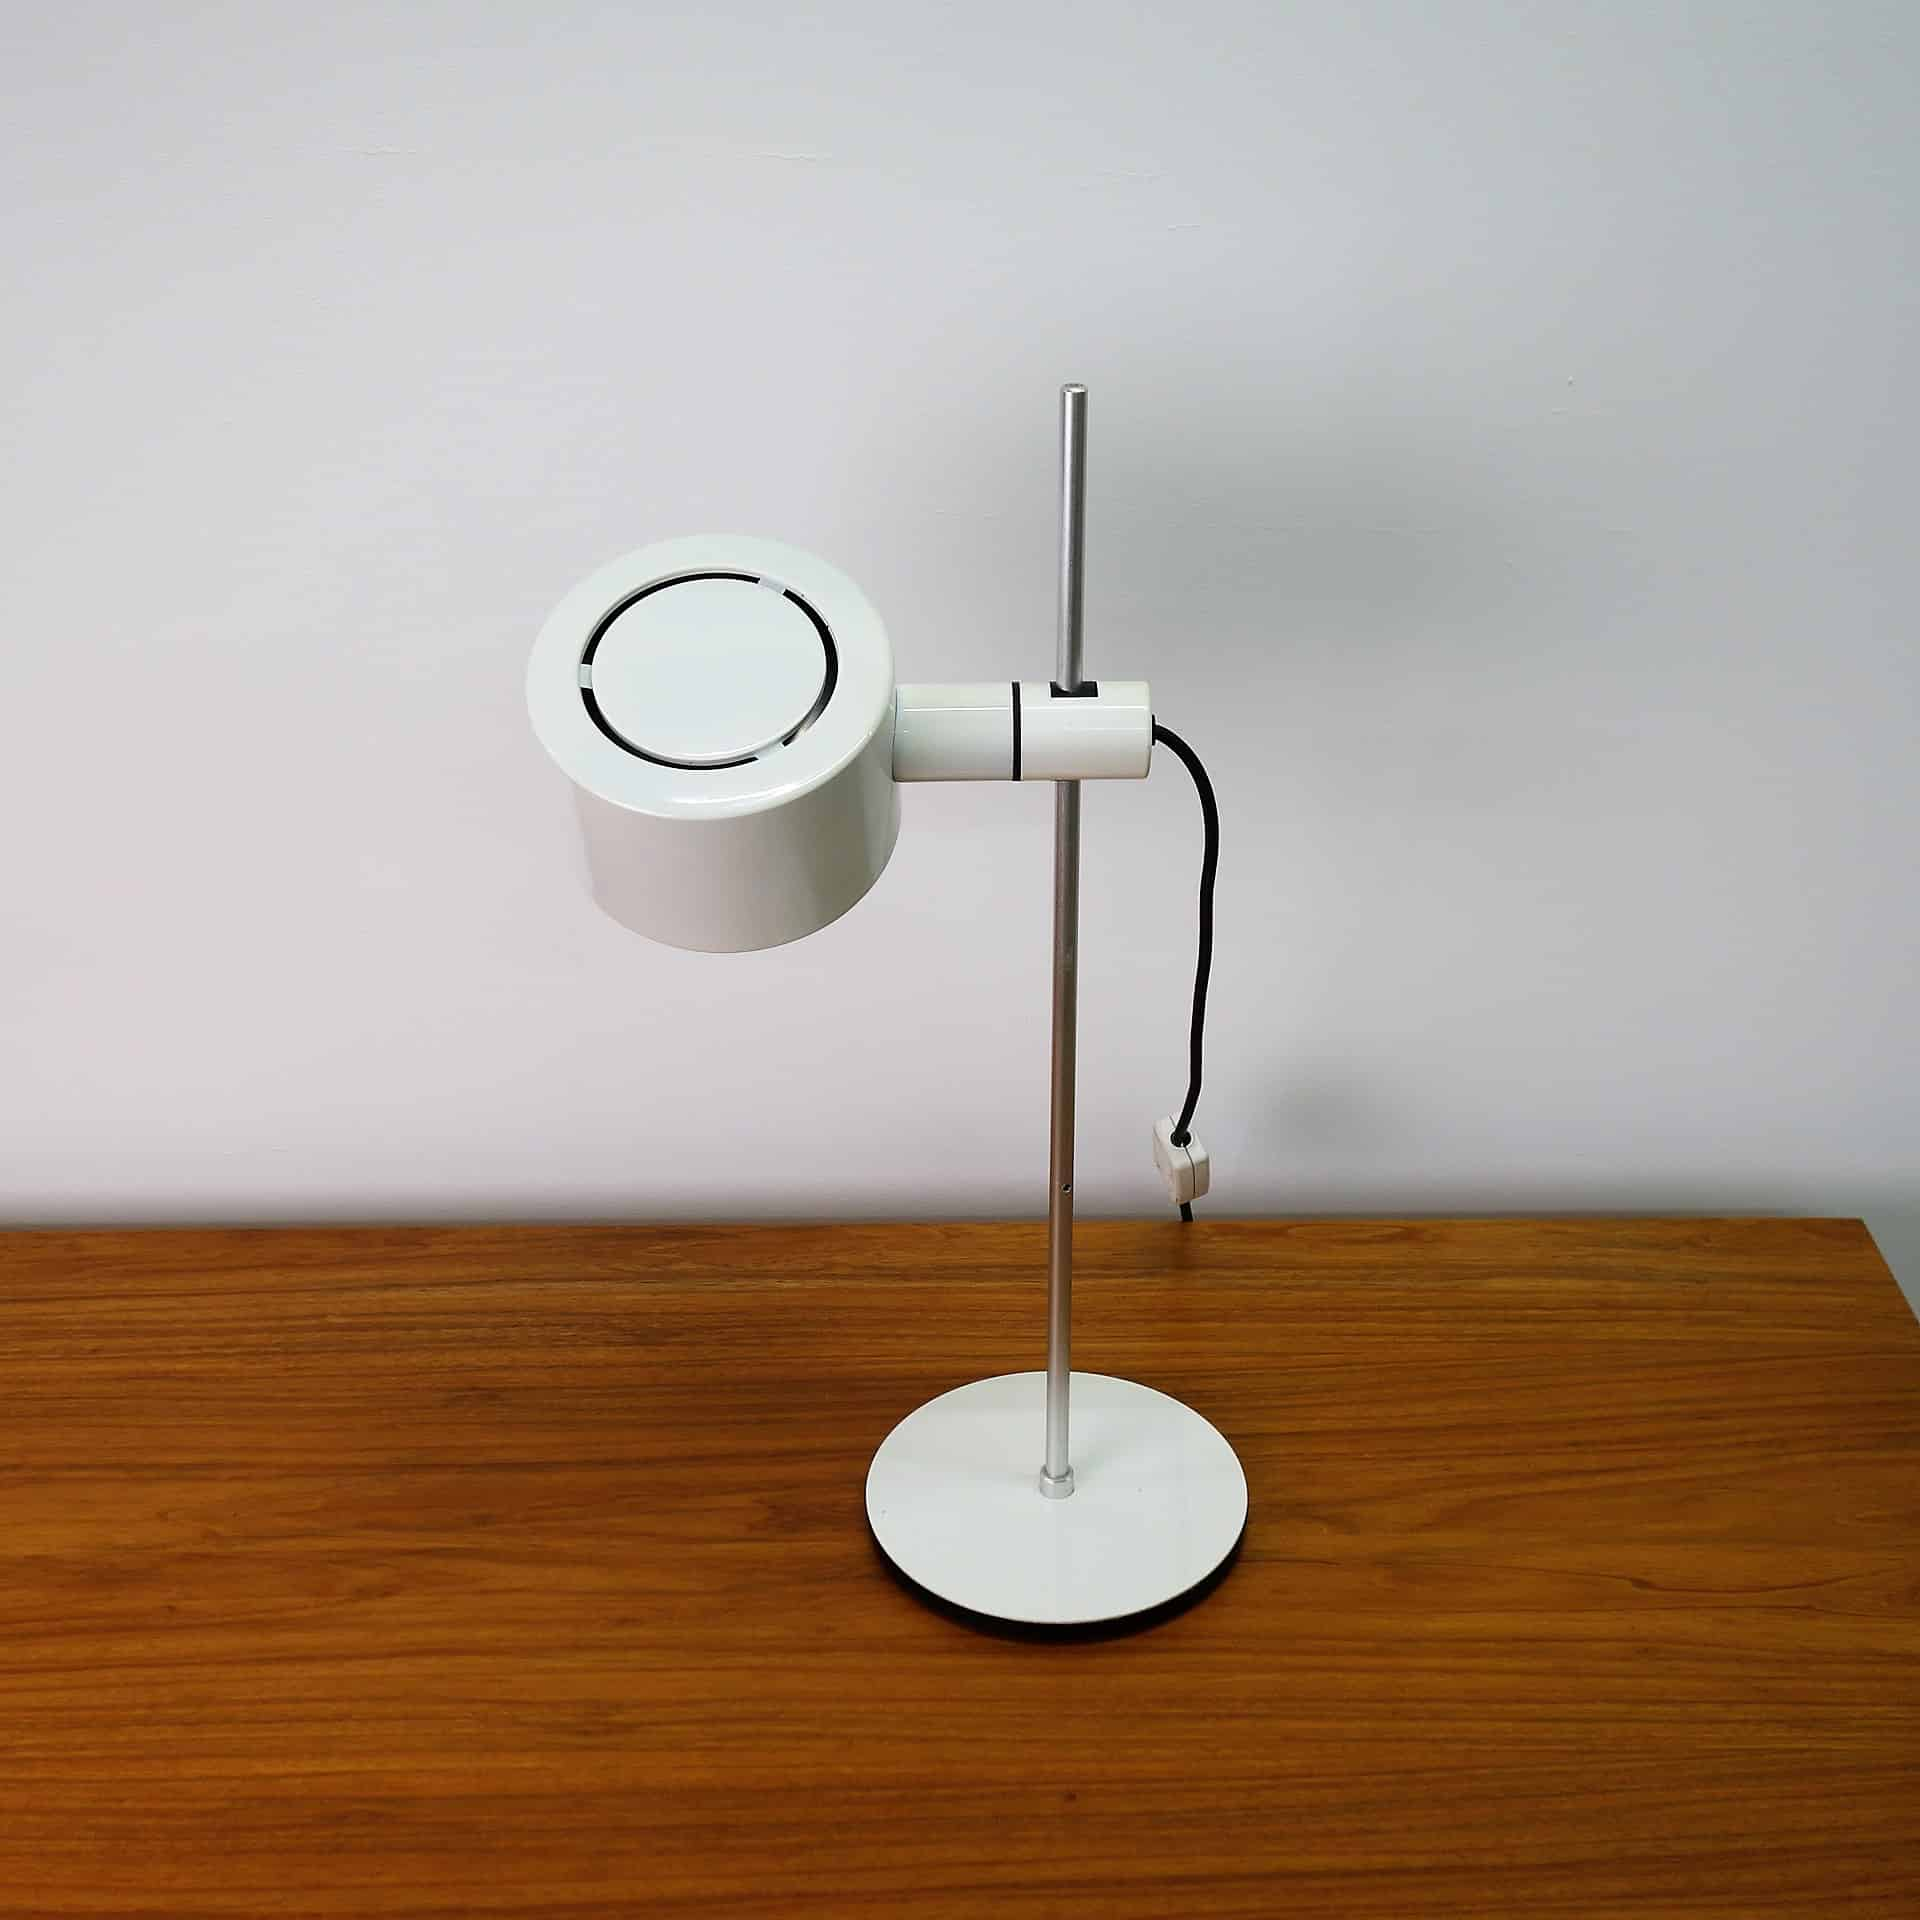 1970s white desk lamp by Conelight Ltd